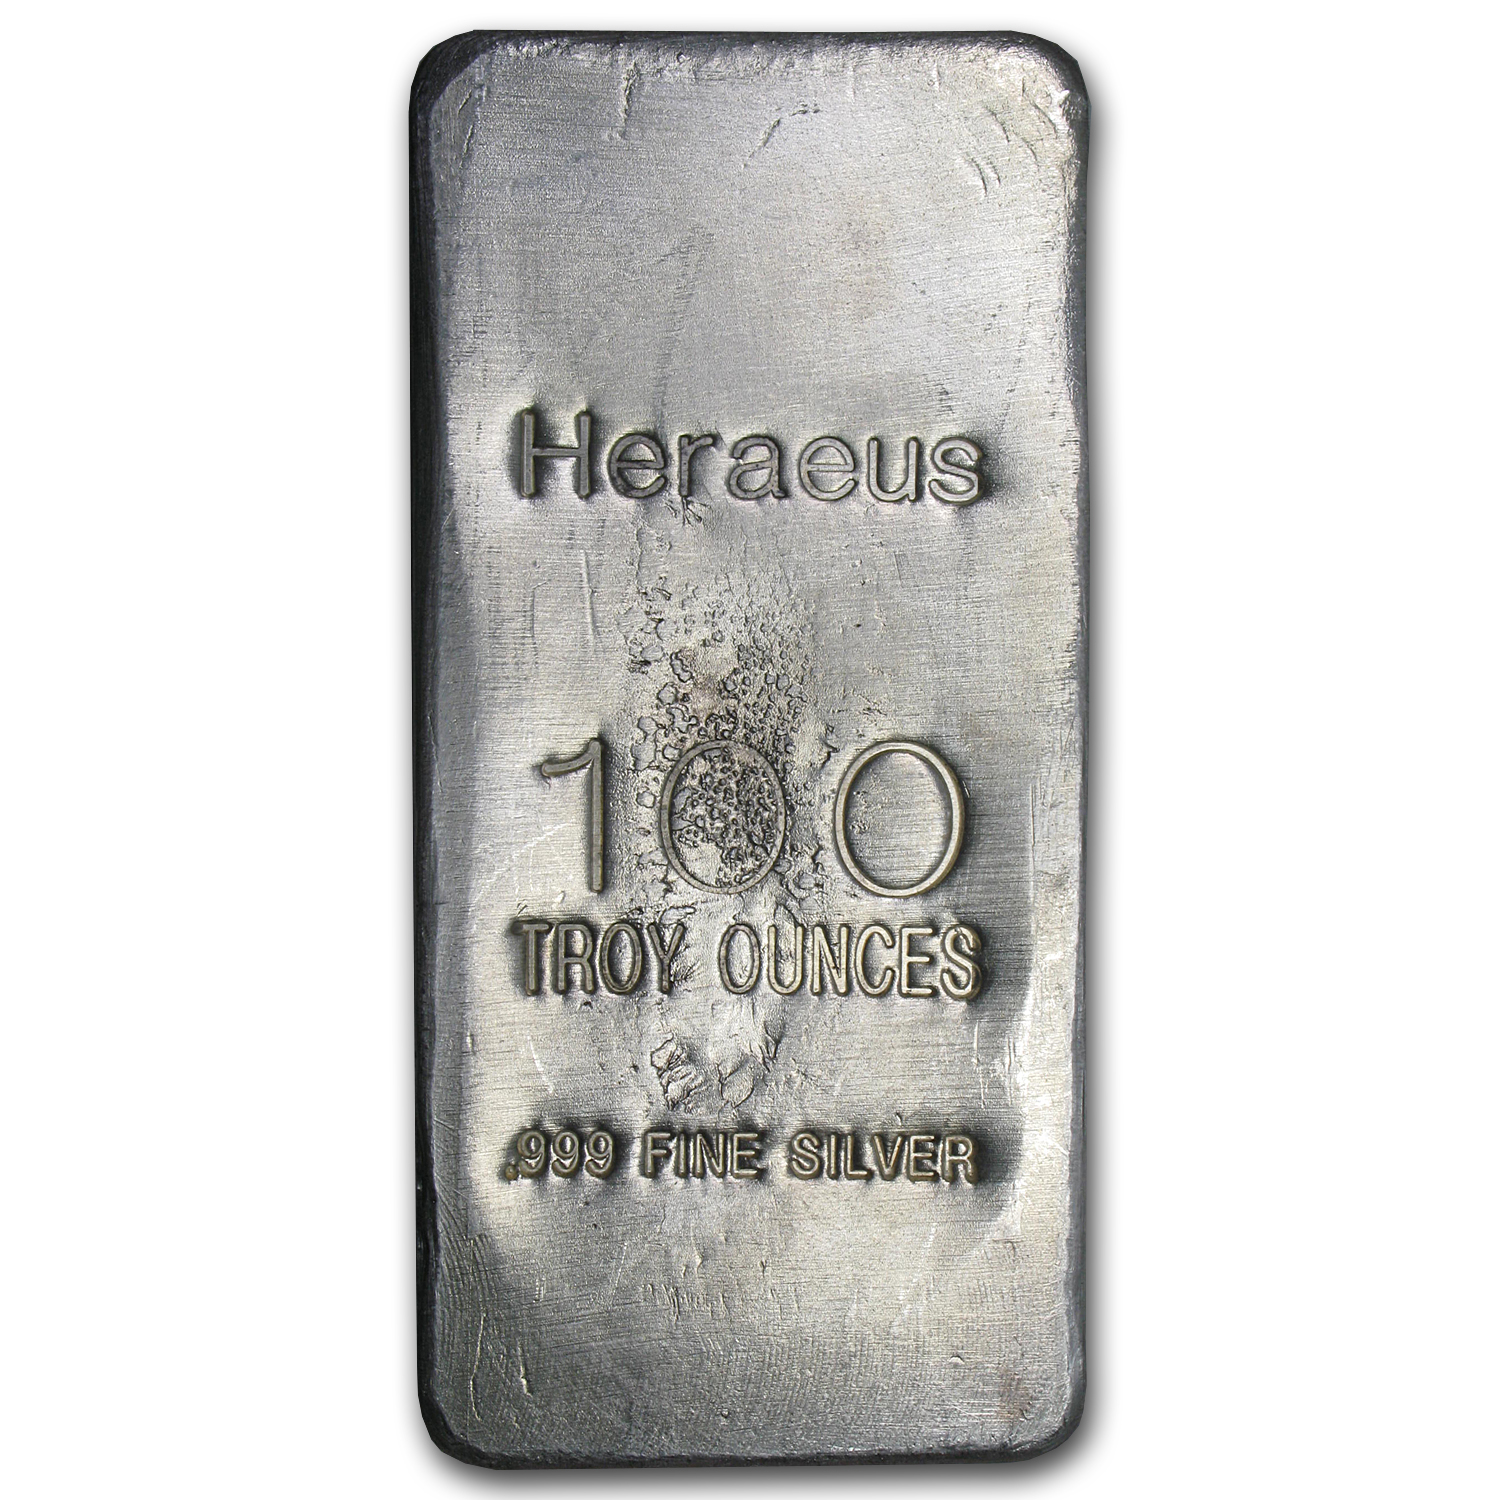 100 oz Silver Bars - Heraeus (Poured)